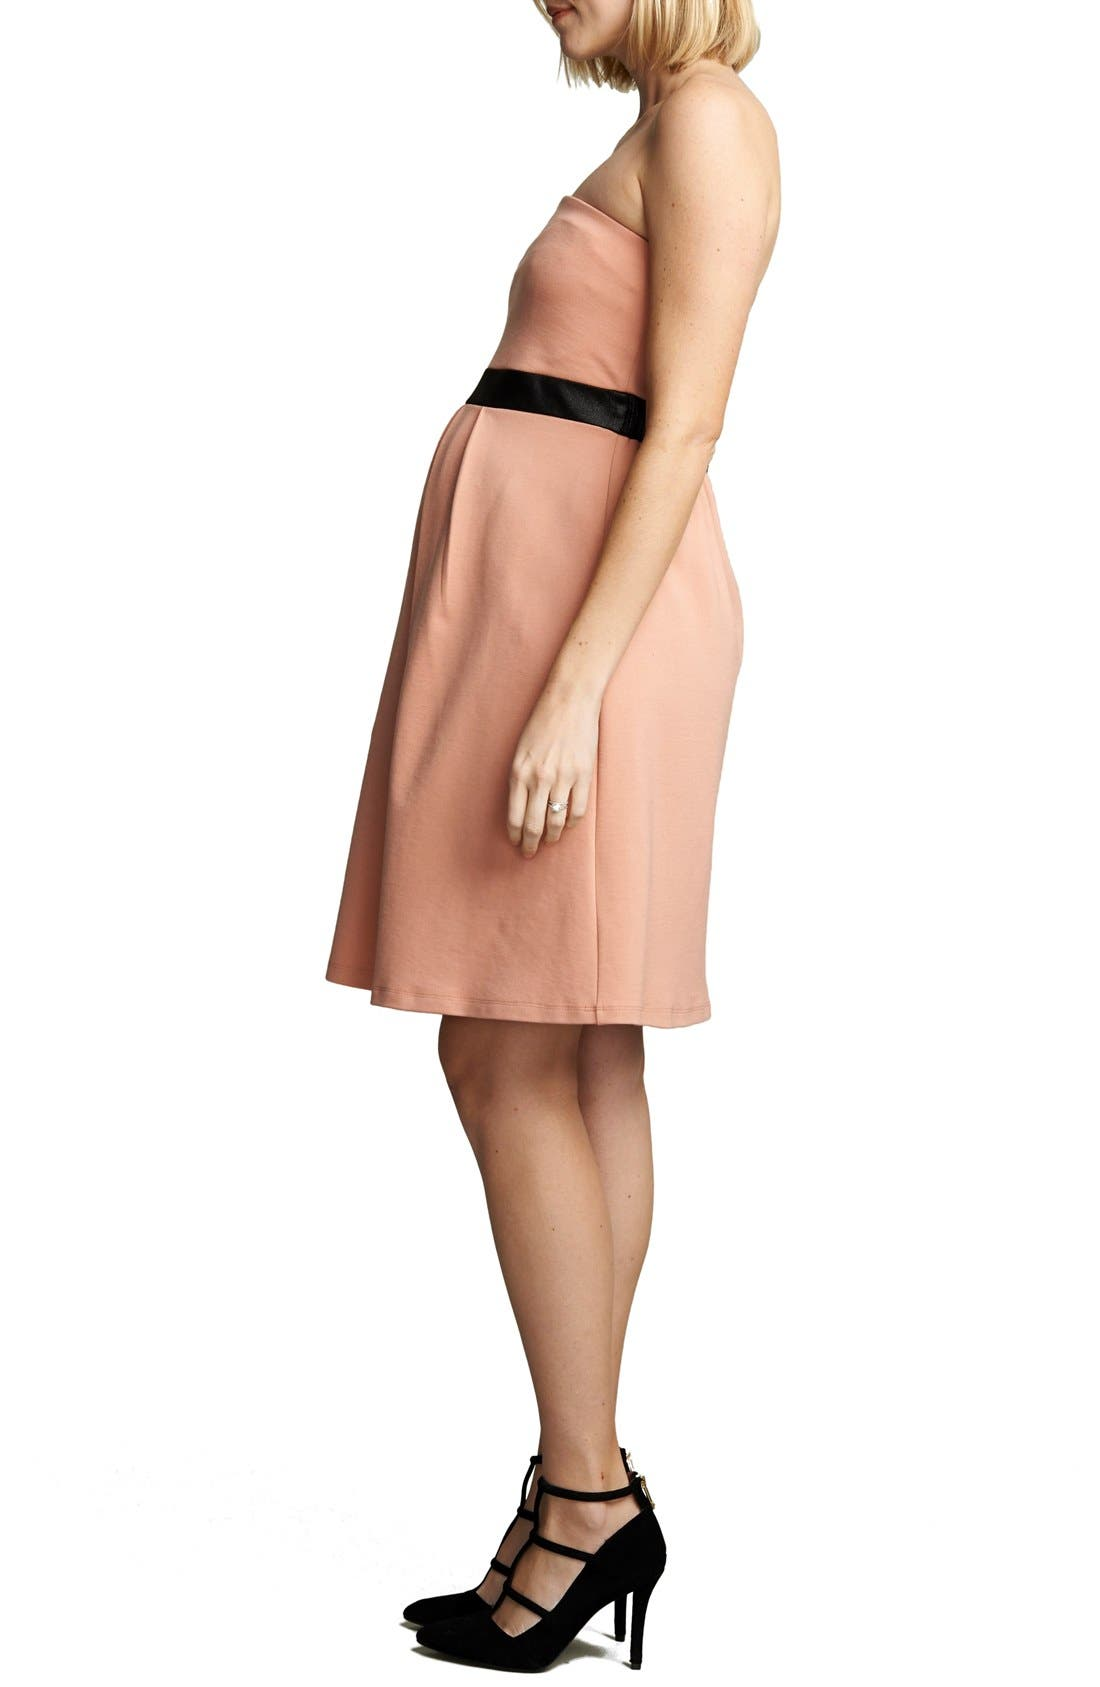 Strapless Maternity Dress,                             Alternate thumbnail 3, color,                             Blush/ Black